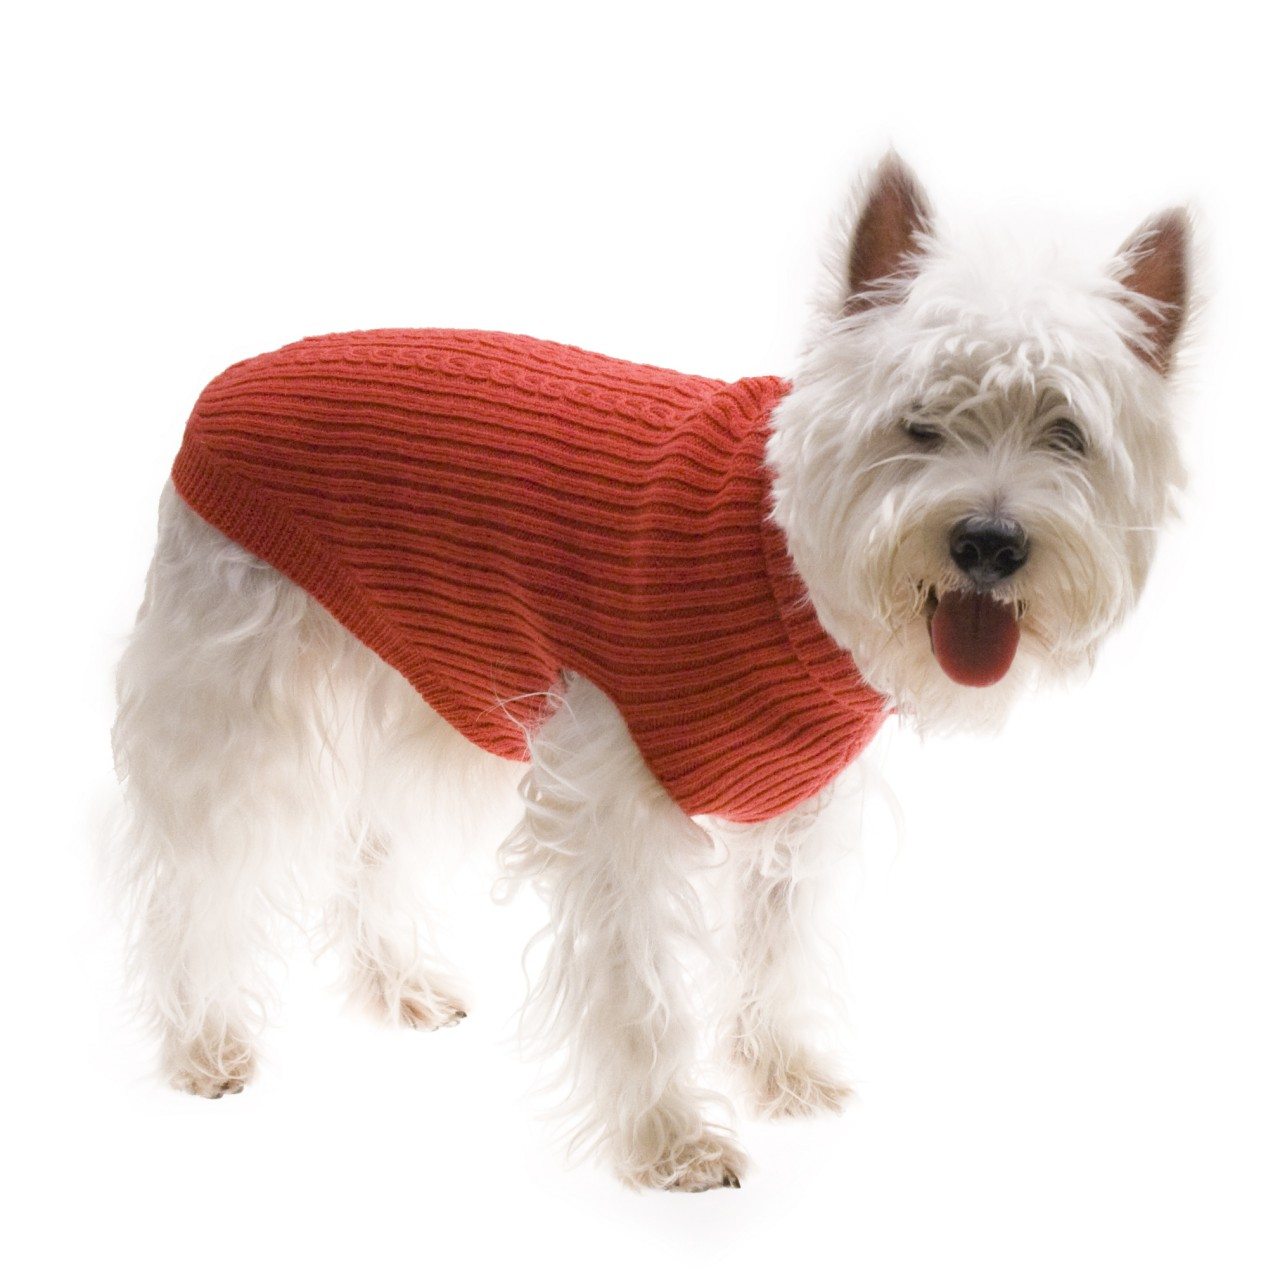 Pets At Home Dog Jumpers photo - 3